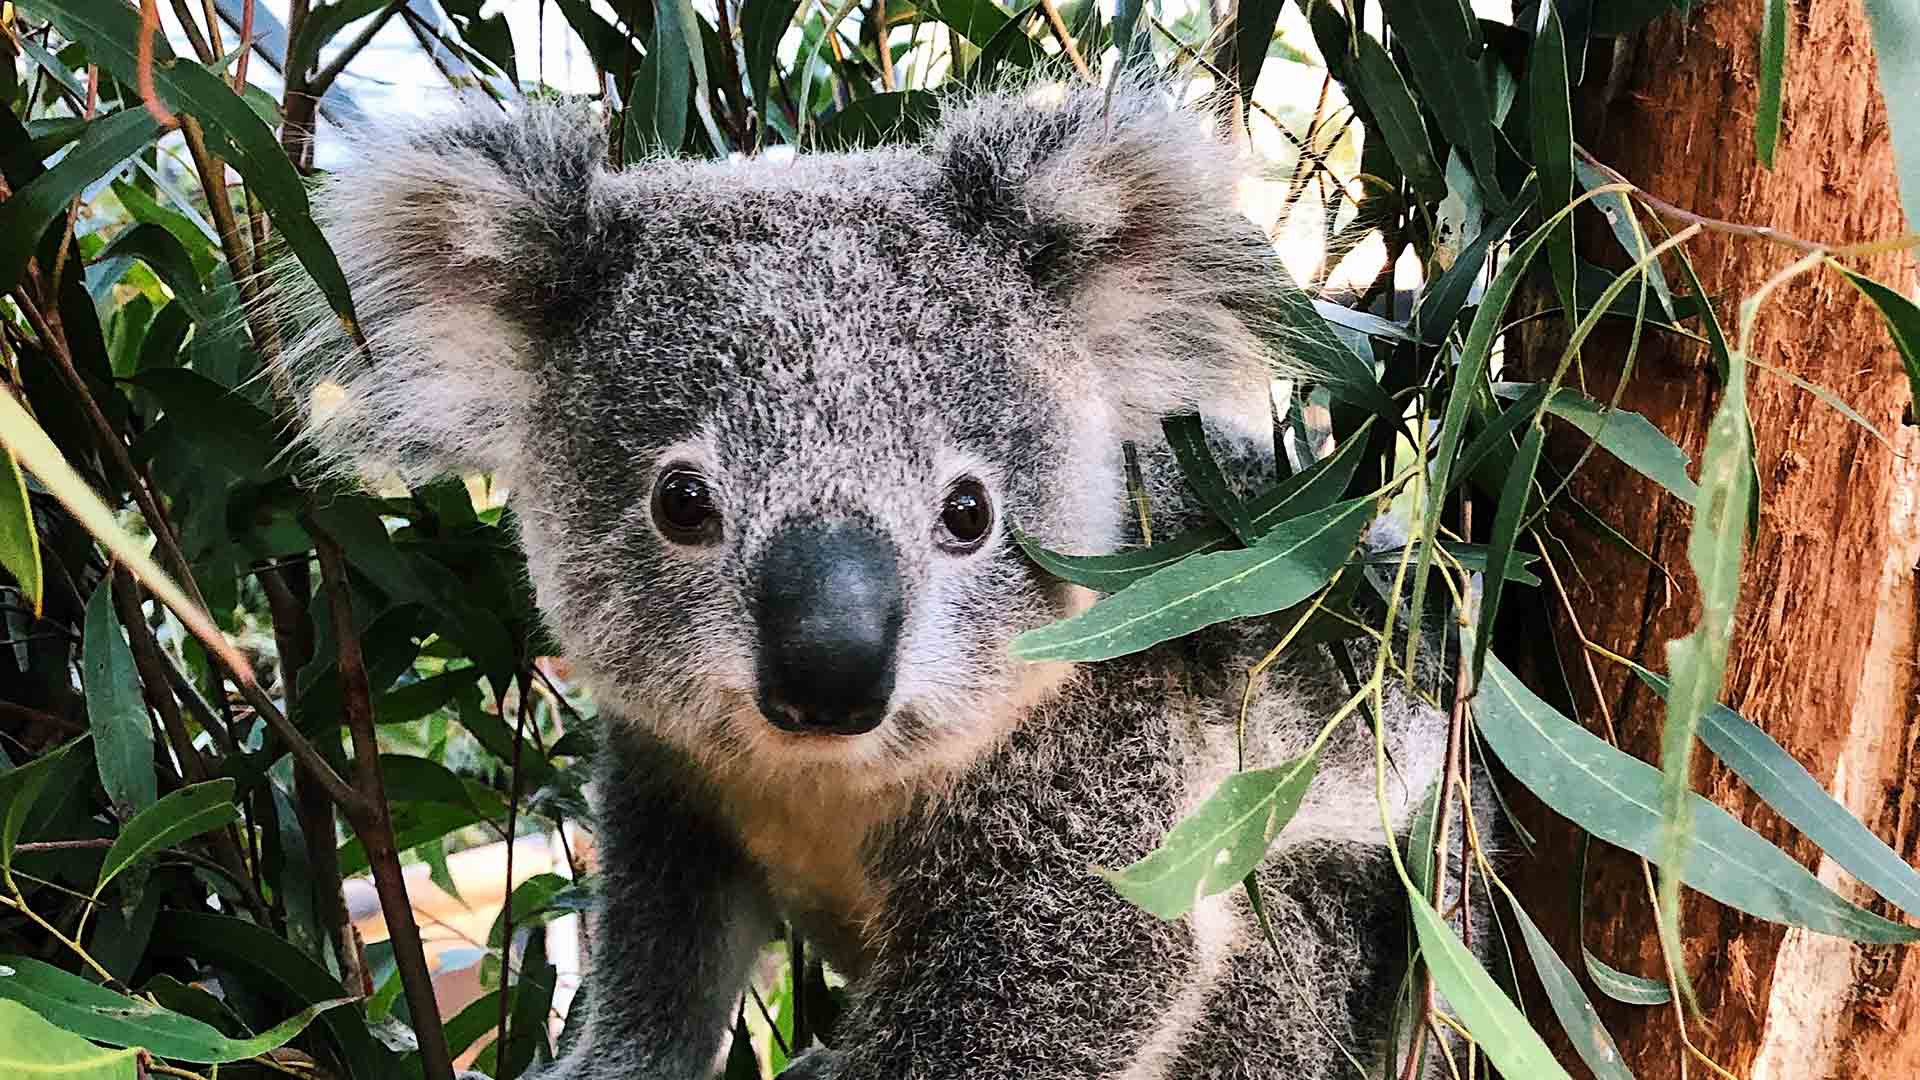 Taronga Zoo Has Released Footage of Its Adorable Koala Joey If Your Day Could Use Some Cuteness